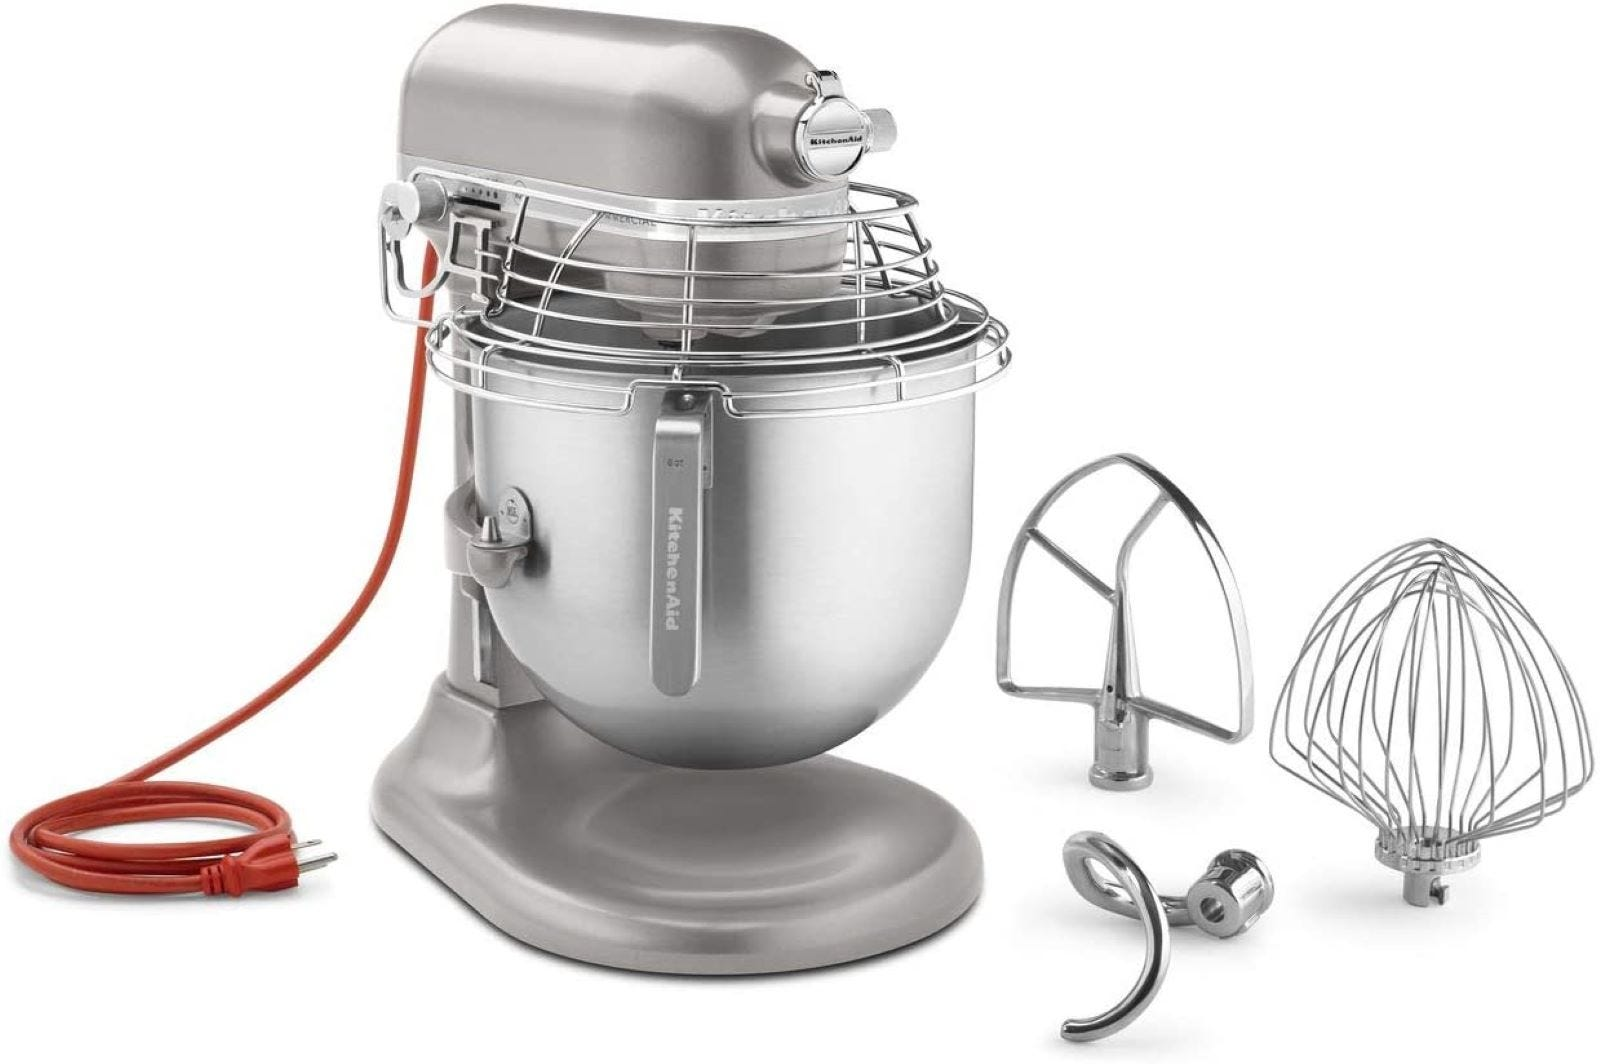 The KitchenAid 8-Quart Commercial Countertop Mixer and Accessories in Nickel.